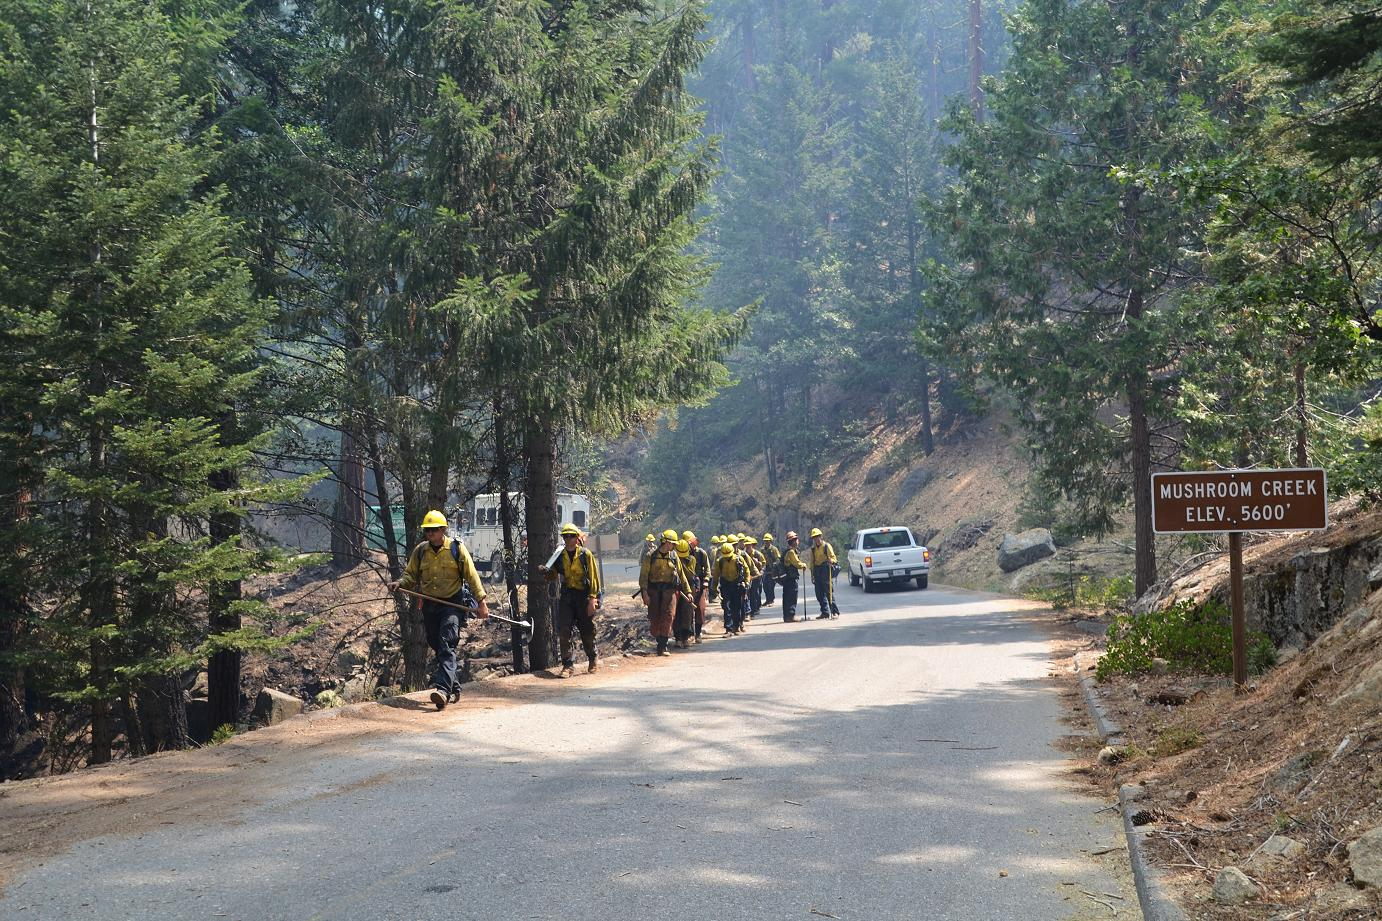 Crews along the road - photo by Gina Clugston